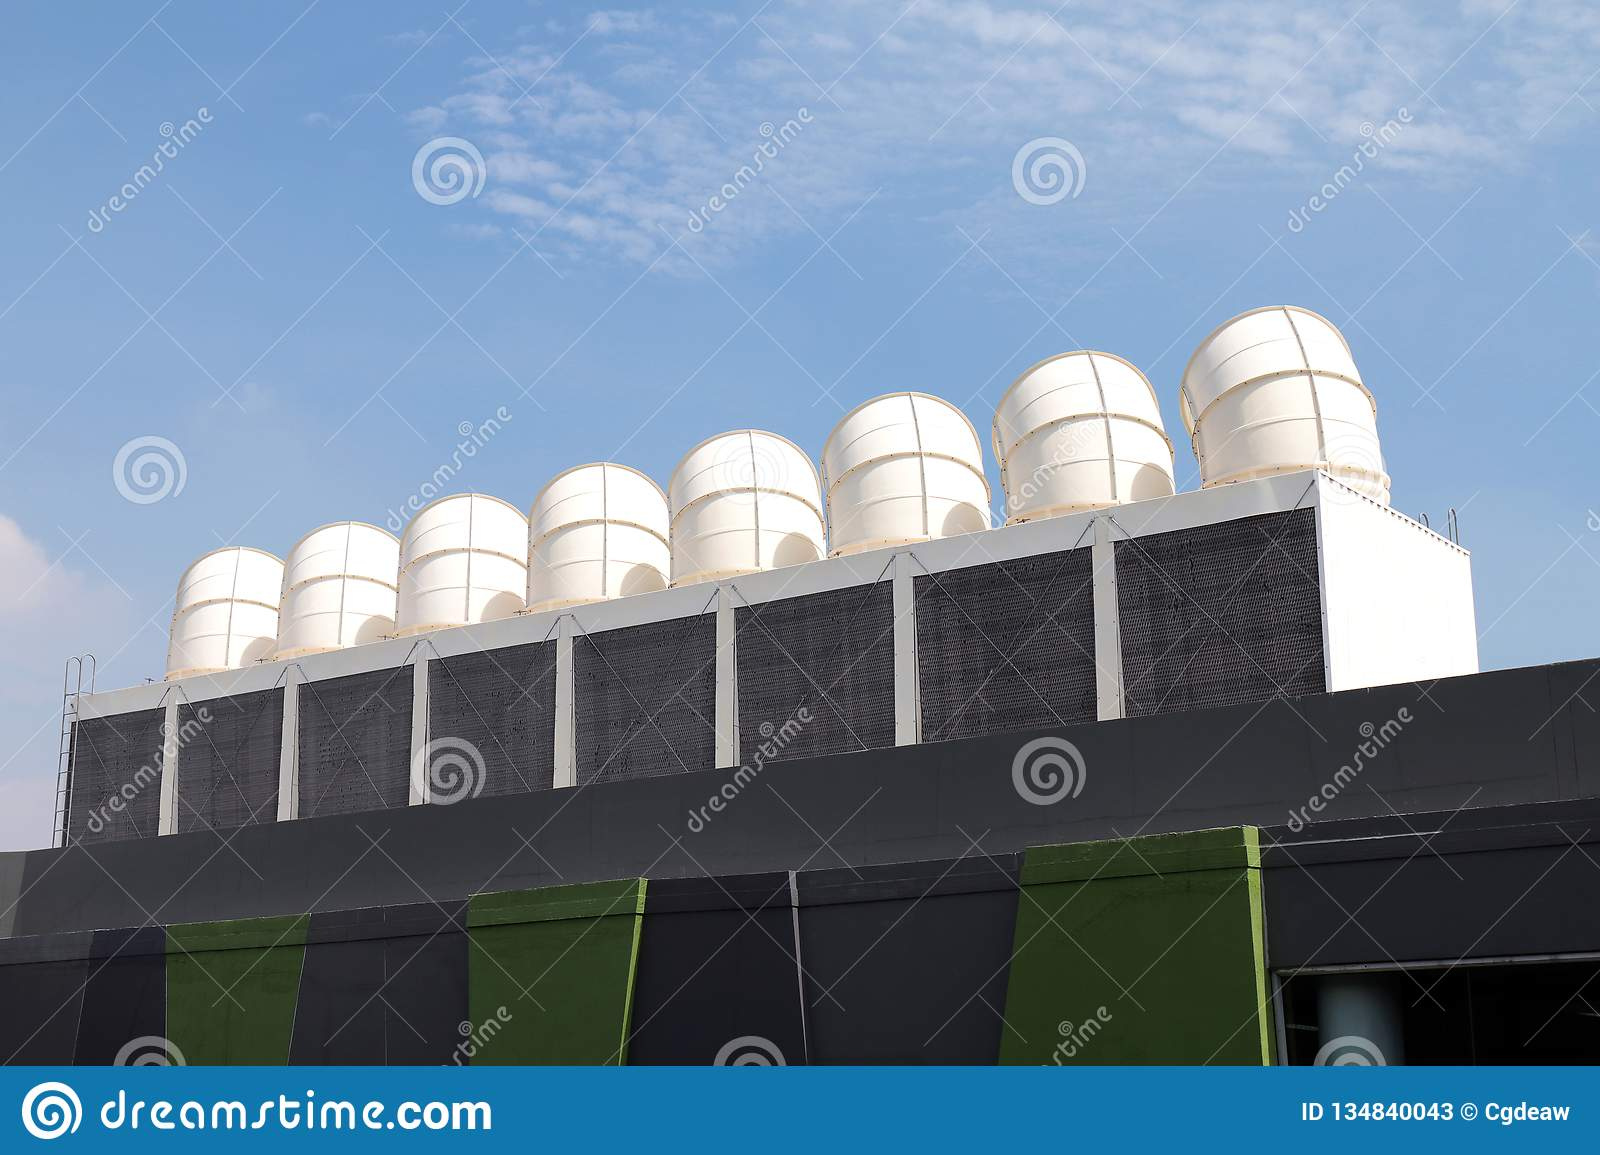 Ventilation System For Heat Control Of Factory Stock Photo